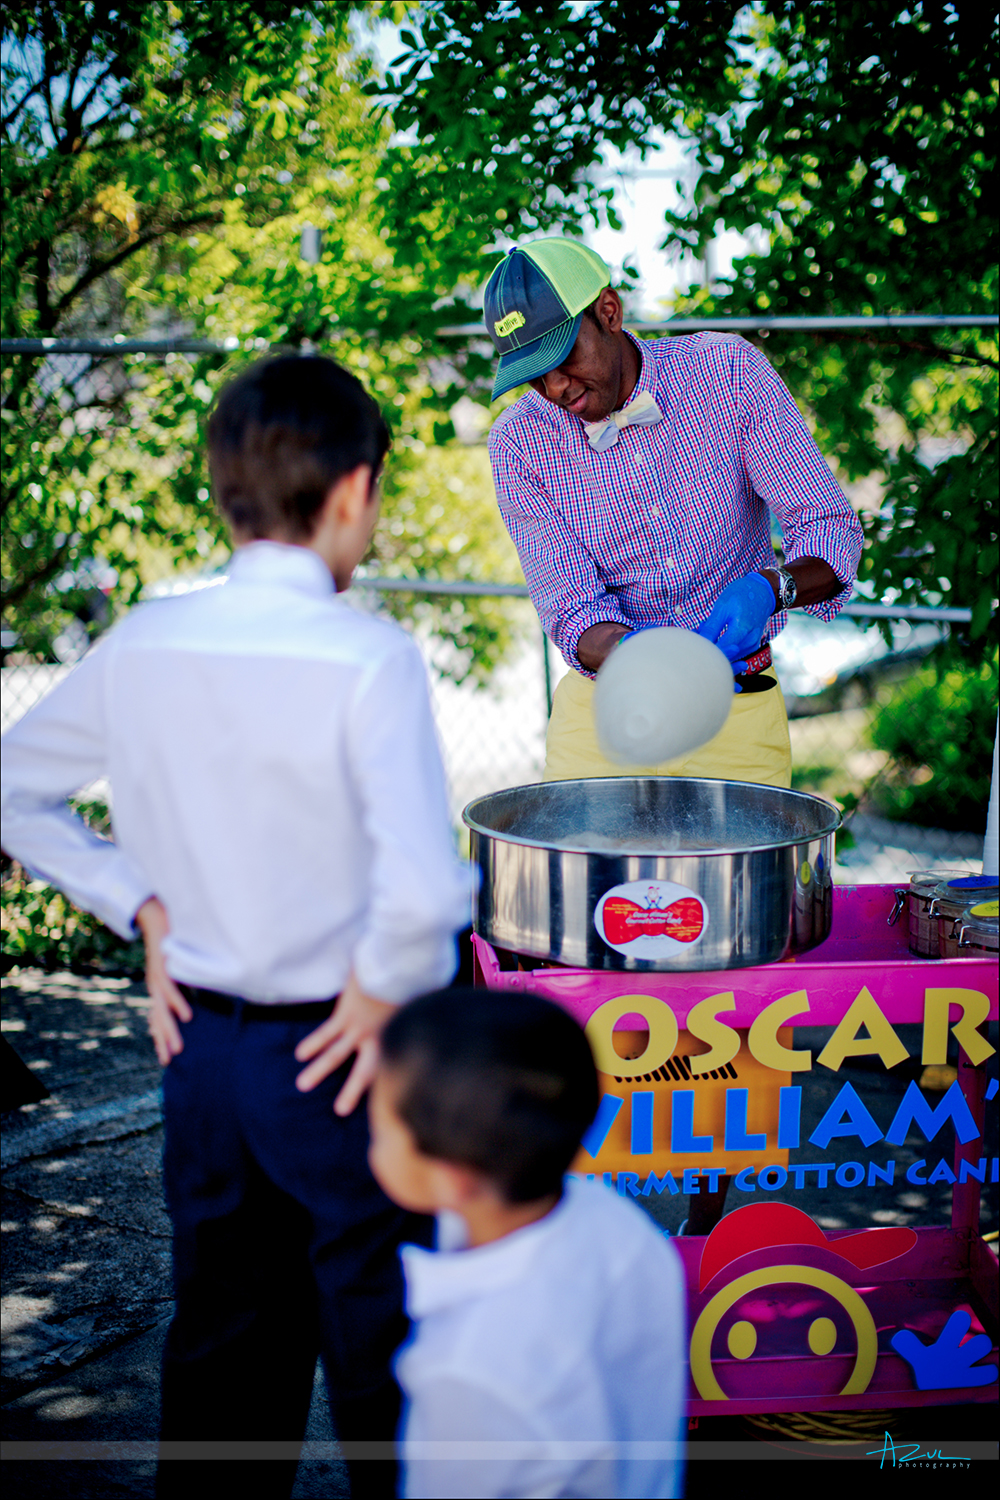 Oscar Williams Gourmet Cotton Candy is the best at a wedding, party or event in Raleigh